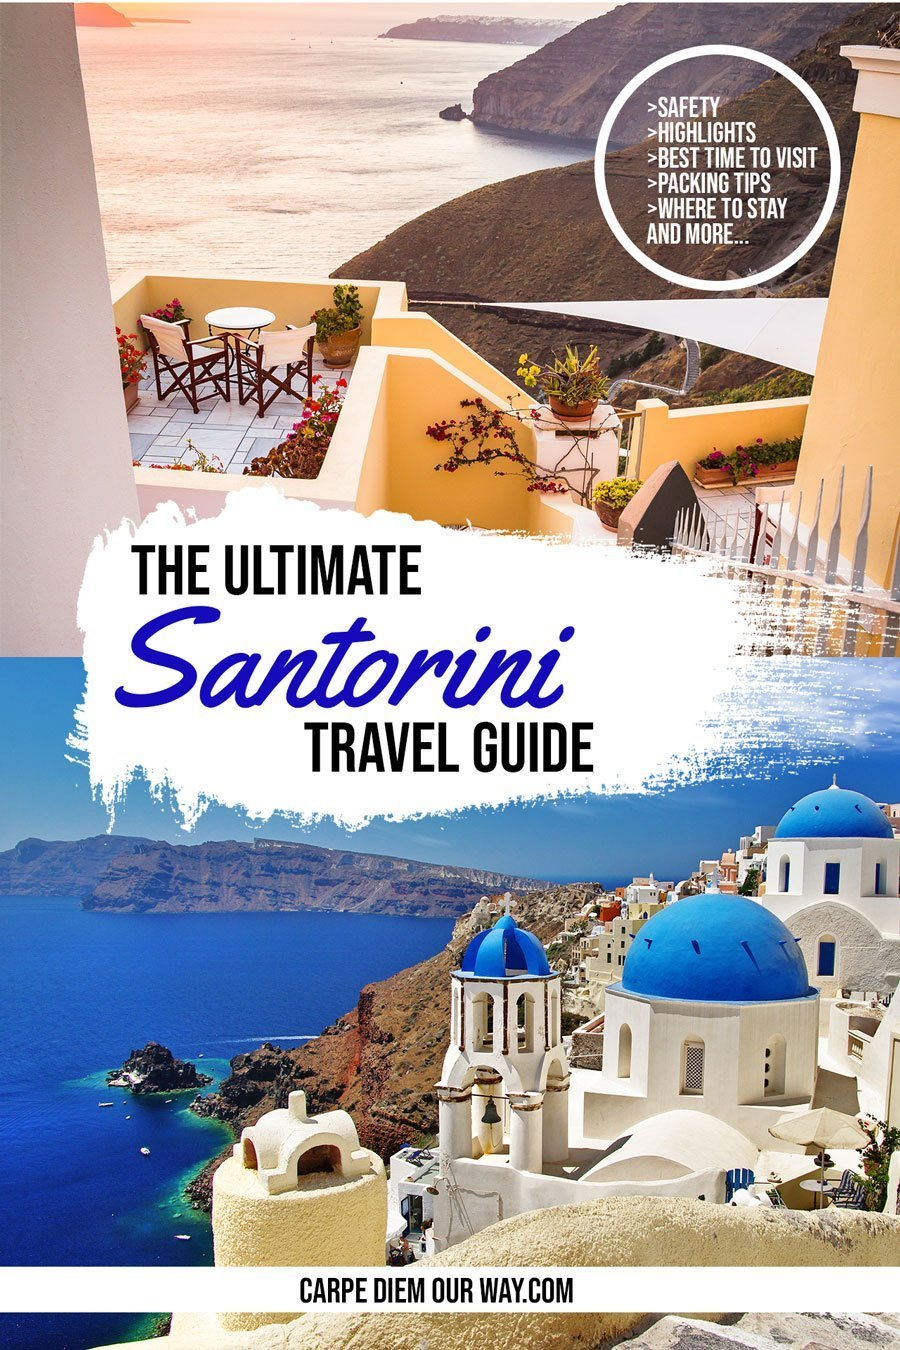 Santorini Blog and Travel Guide